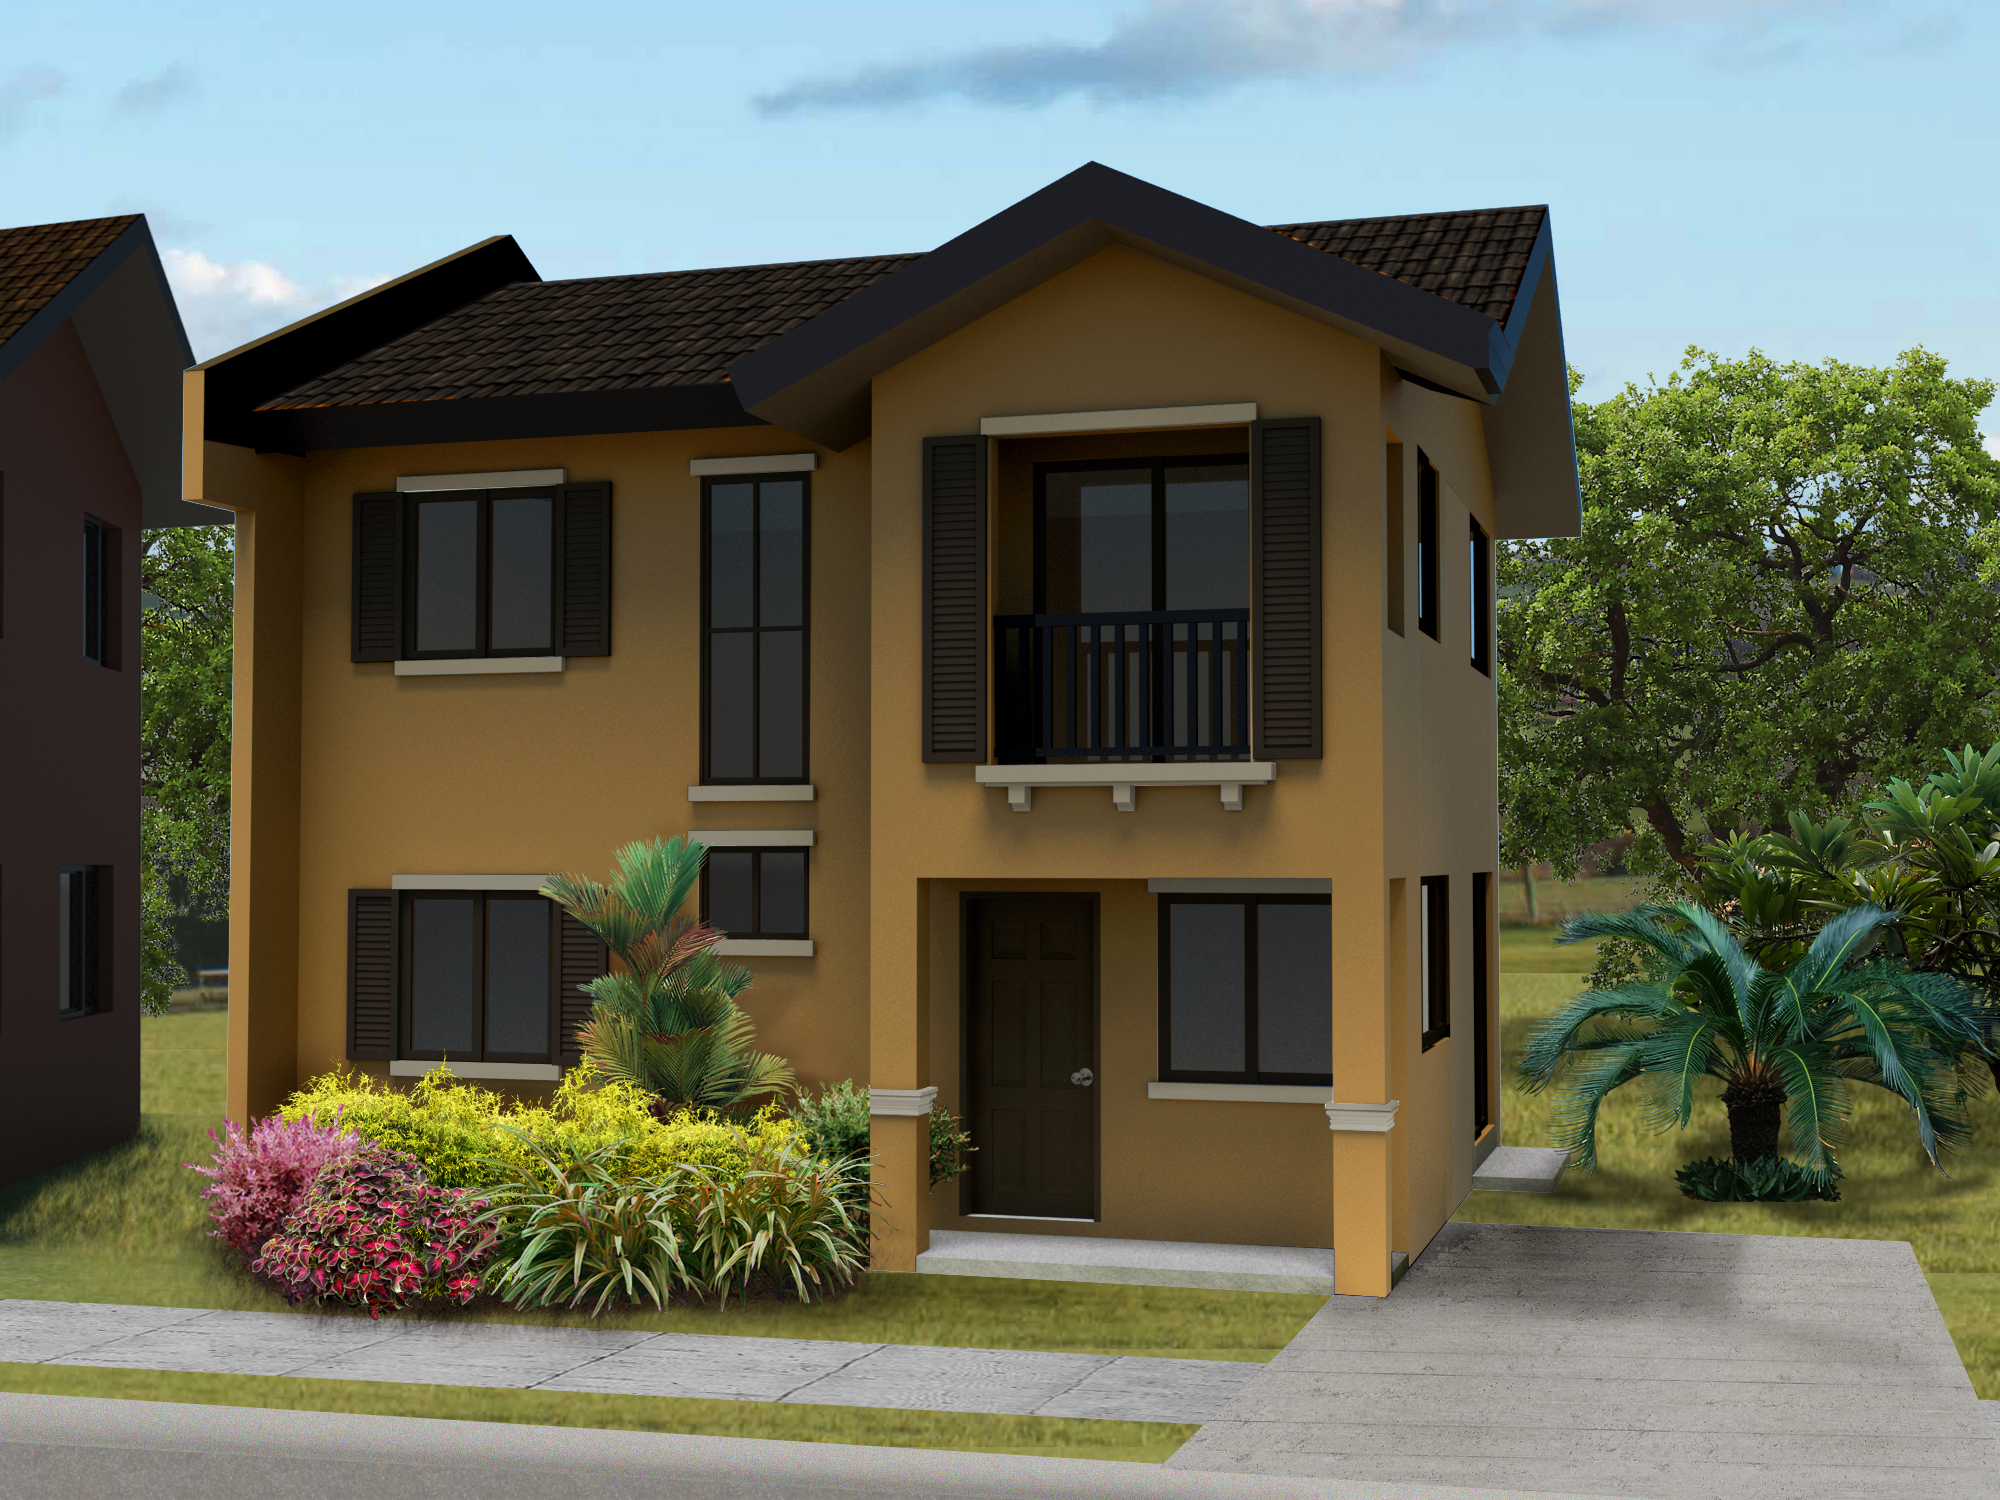 Crown asia designer series move in to your dream home for Toscana house